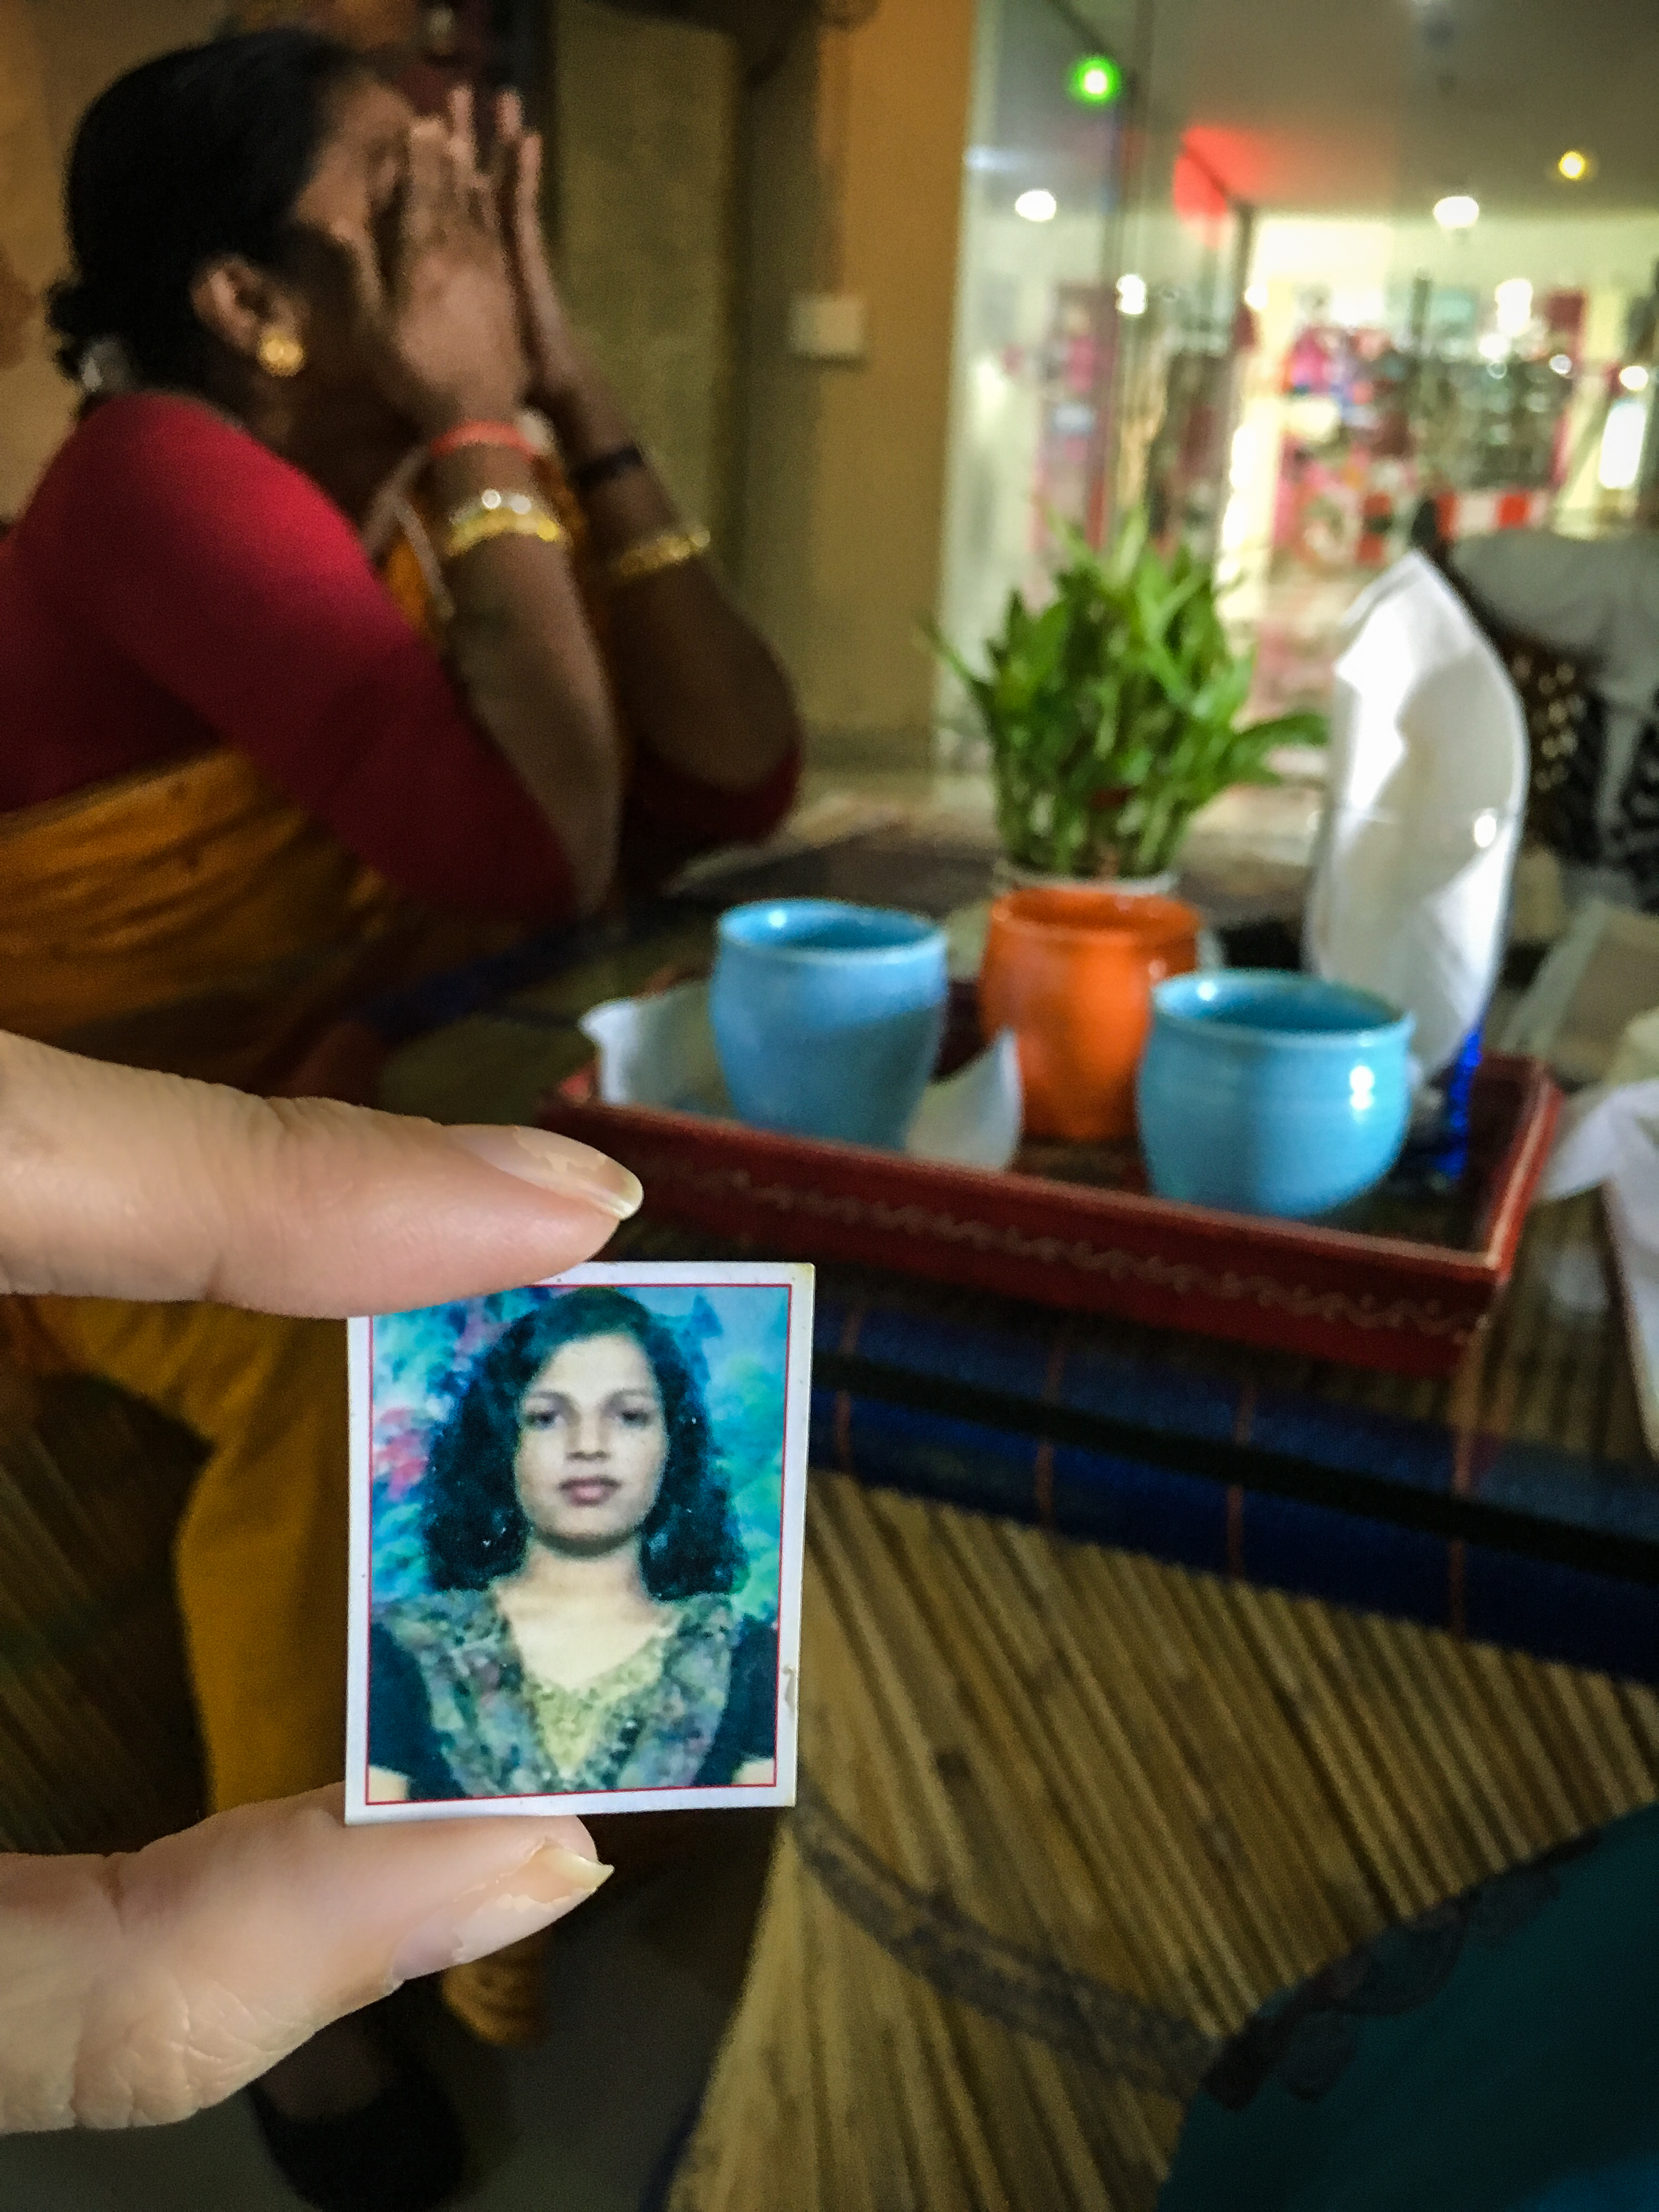 Lela holds an old photo of Rani while Kavita stands in the background, overwhelmed by emotions.